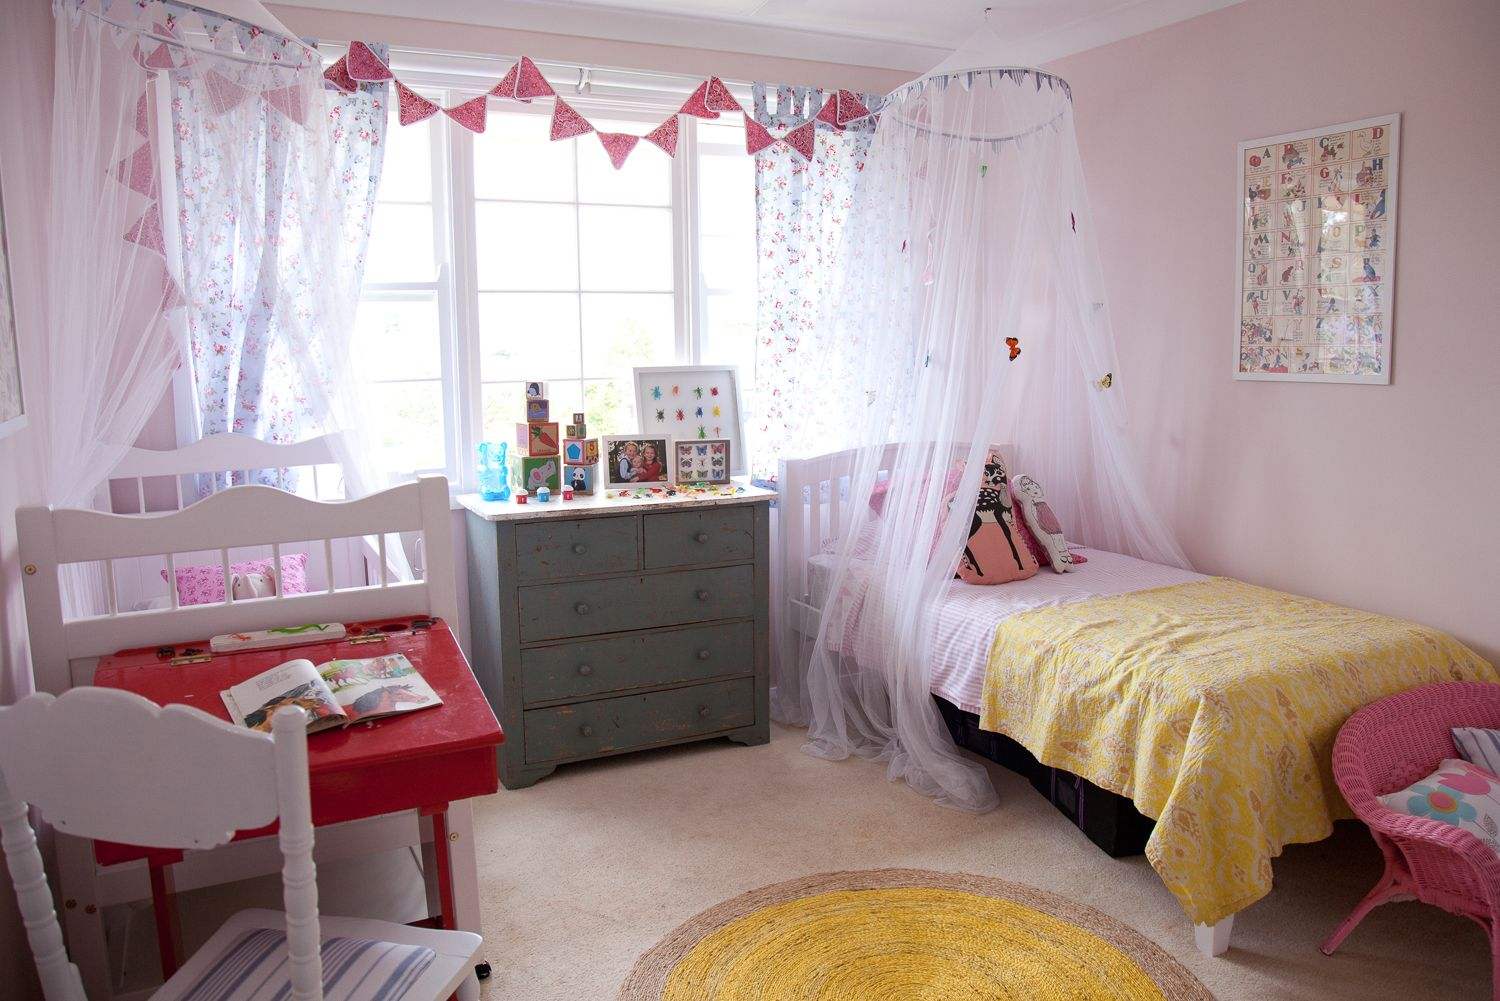 Loft bedroom ideas for teenage girls  Pretty in Pink The girlsu bedroom after Peter works his magic  The